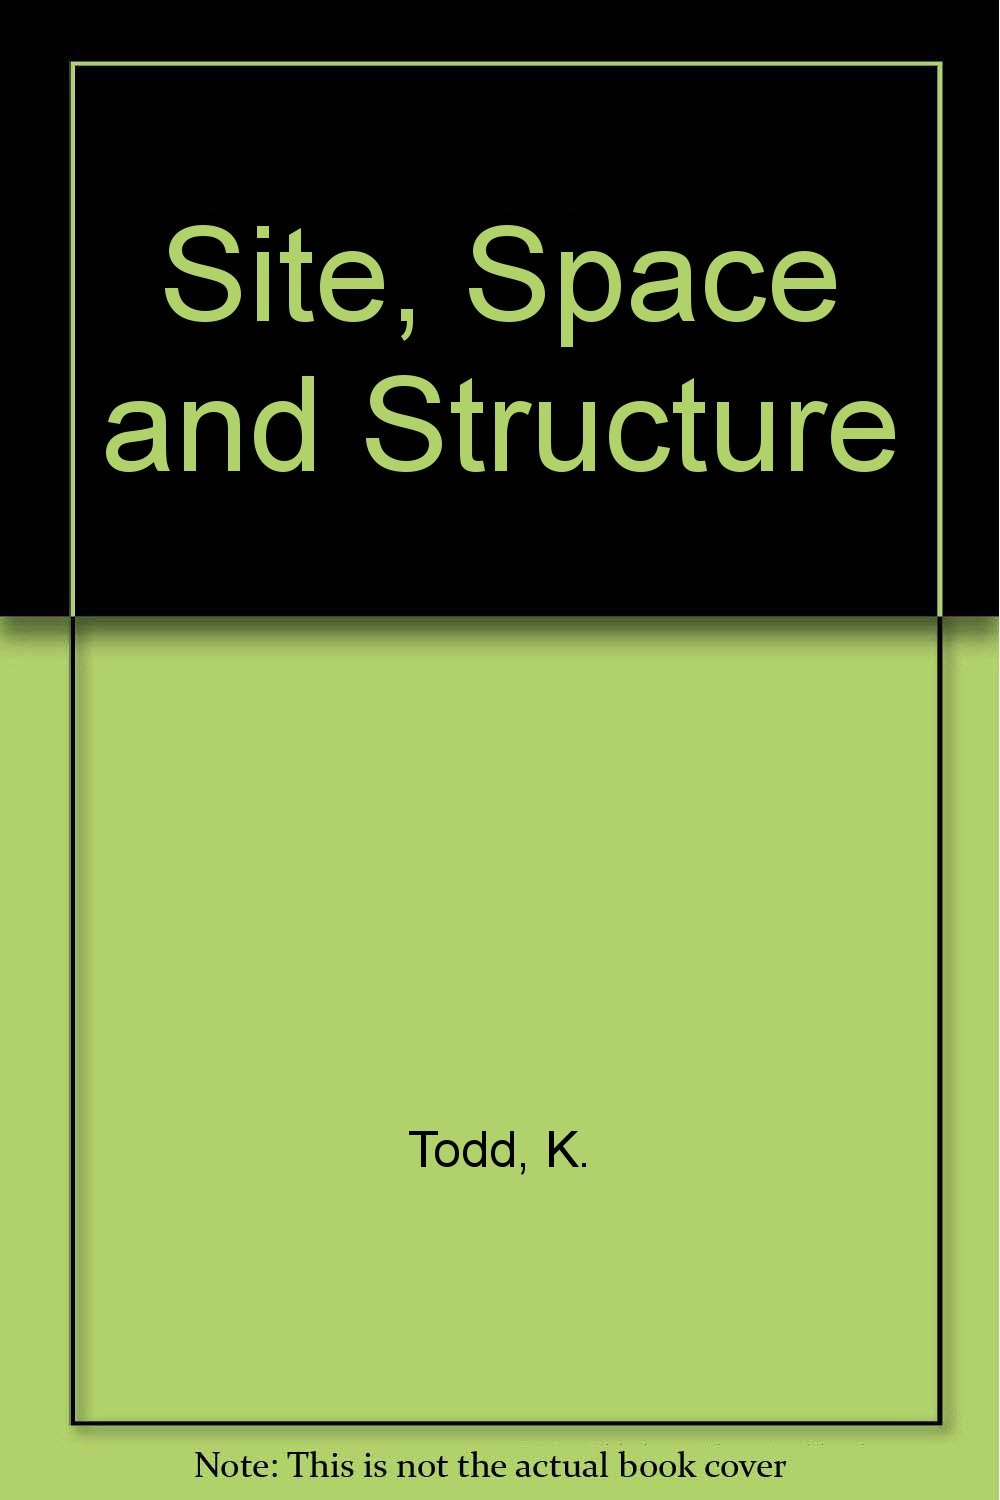 Site, Space and Structure